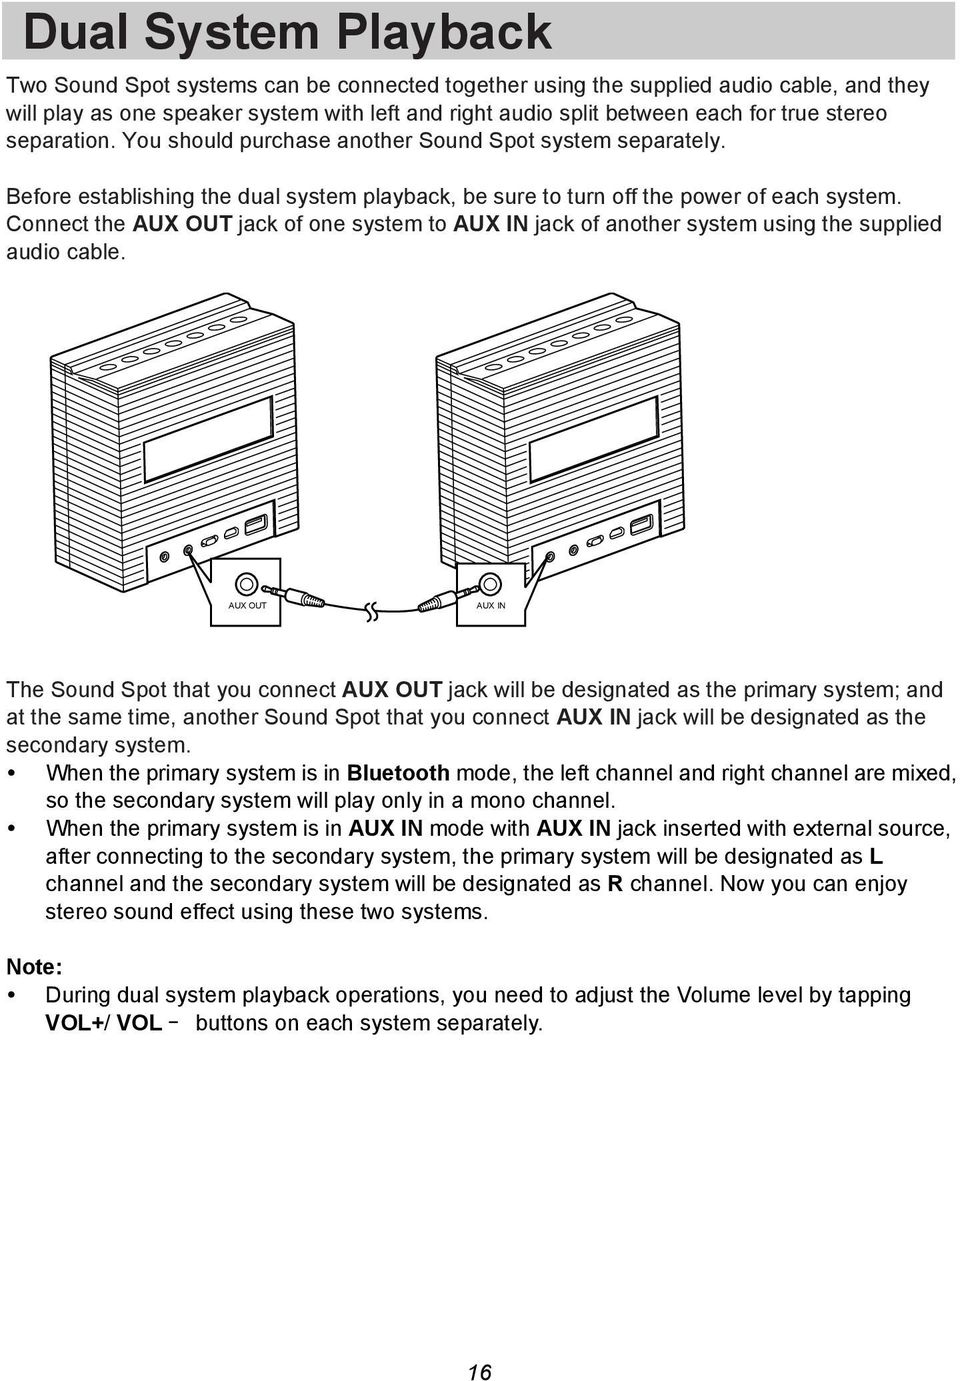 Connect the AUX OUT jack of one system to AUX IN jack of another system using the supplied audio cable.